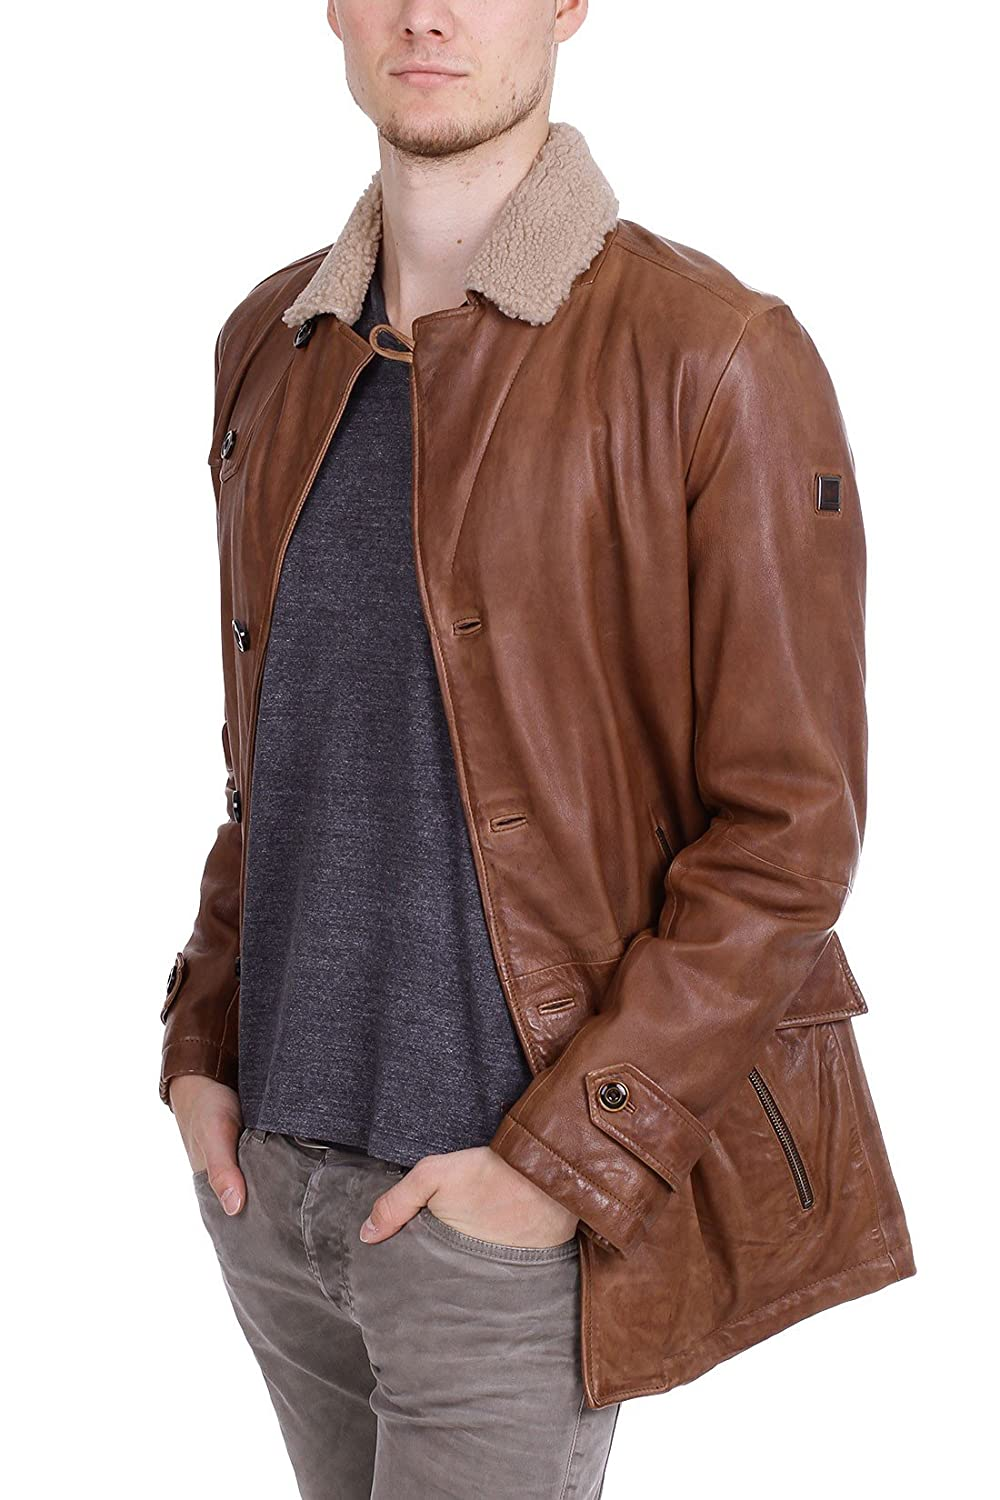 BOSS ORANGE Jacke Jofin_R 50297057 Herren